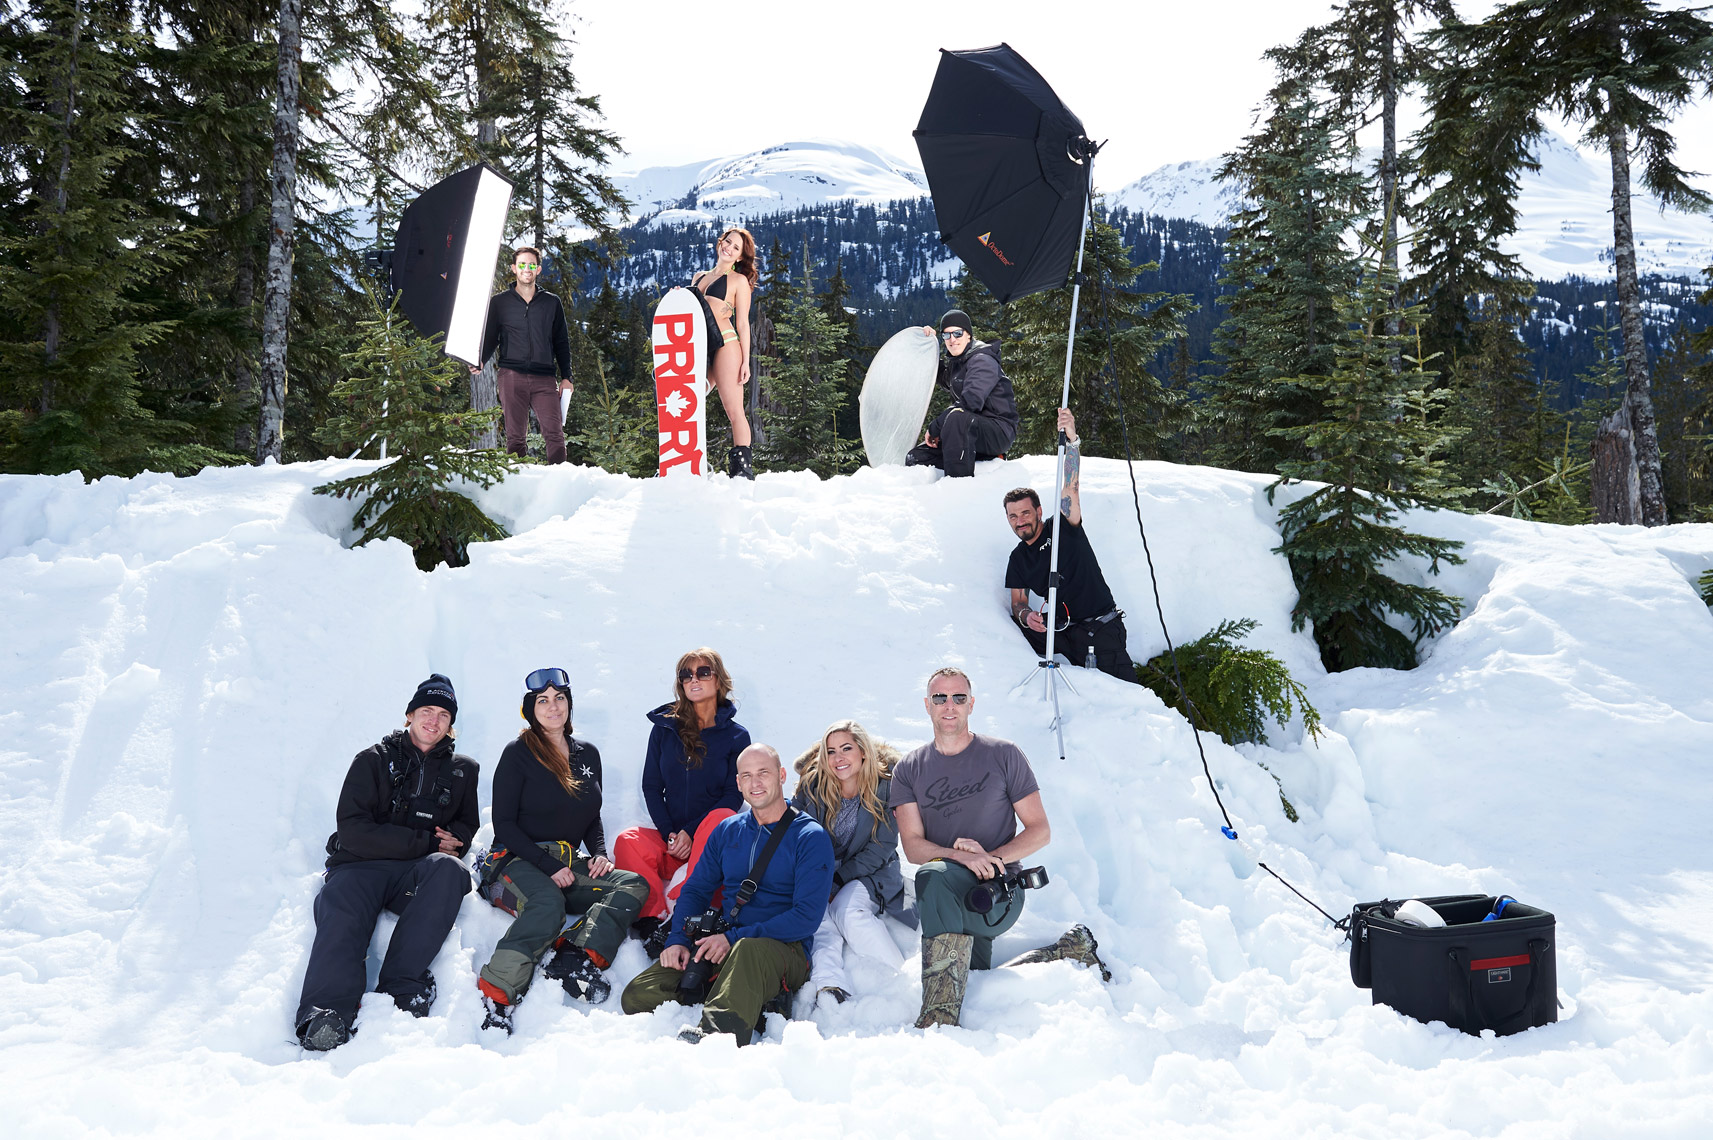 2017-Vancouver-BTS-Photographer-ErichSaide-Behindthescenes-Whistler-PriorSnowboard-Team